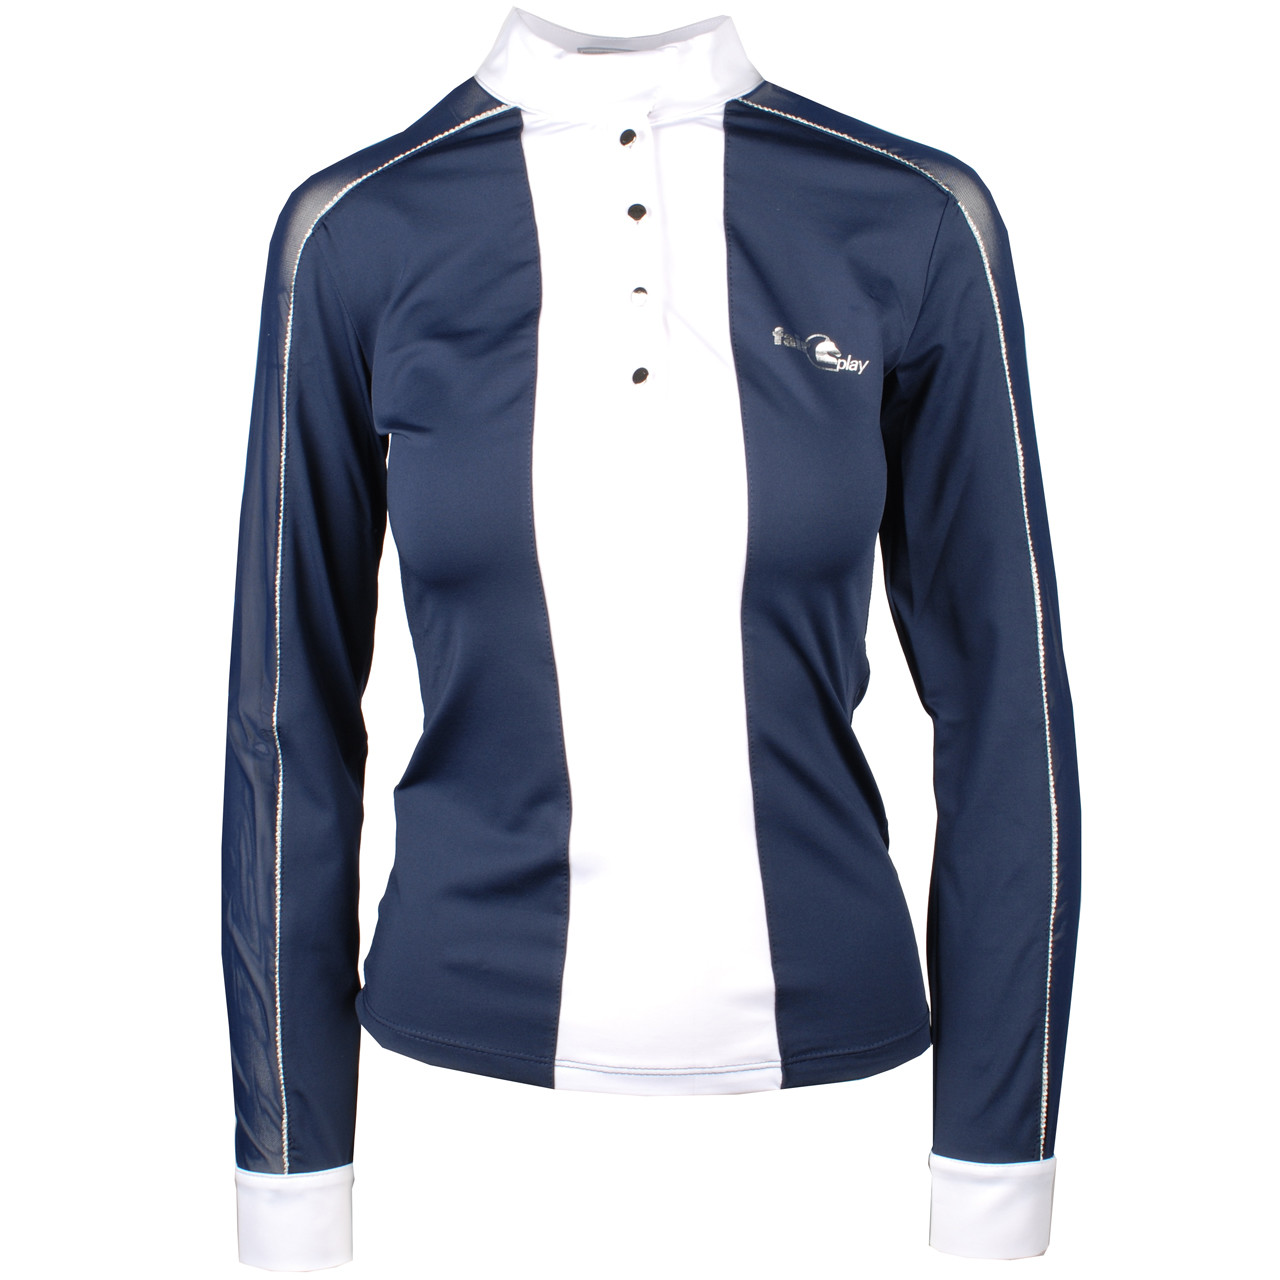 Fair Play Claire lm wedstrijdshirt donkerblauw maat:42